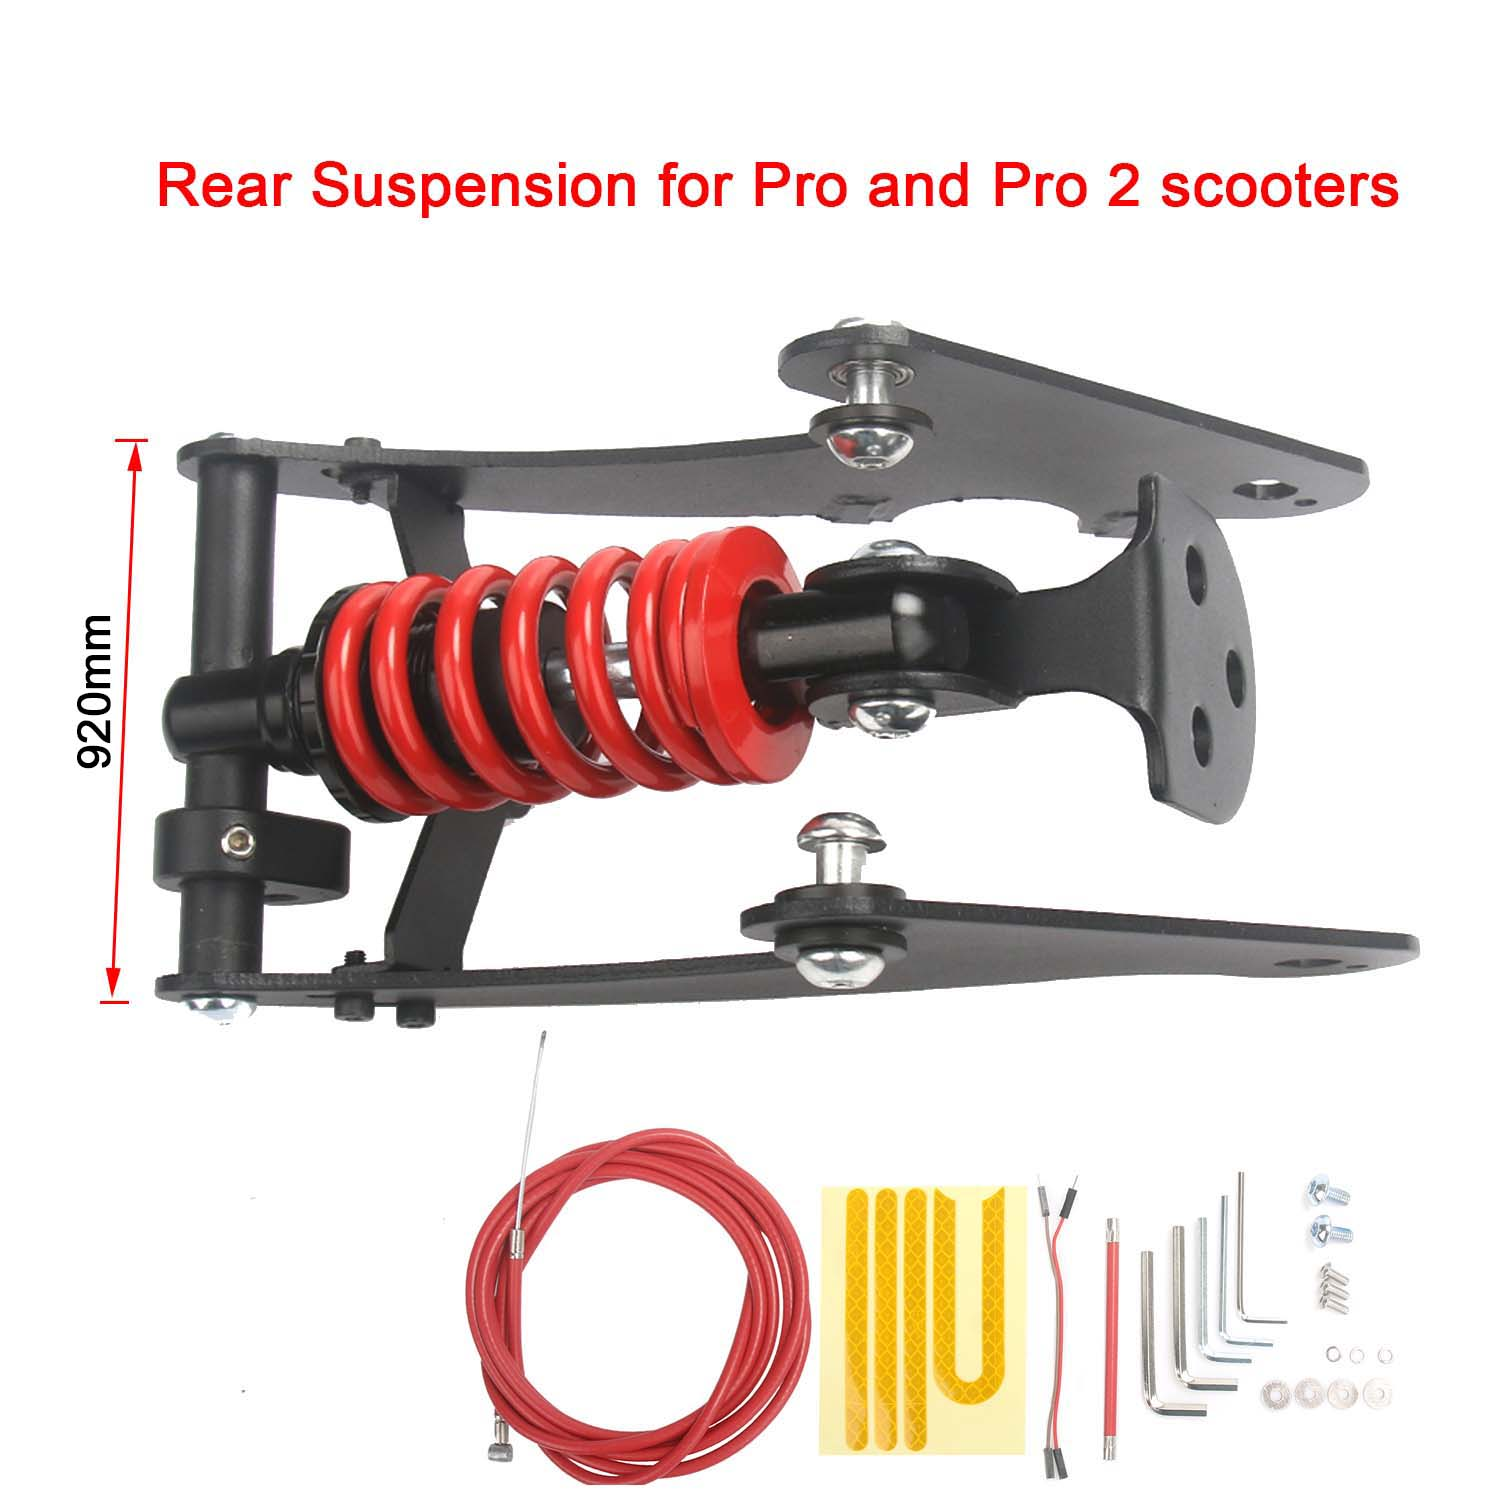 Scooter Accessories Rear Shock Absorber Of Scooter Electric Scooters Scooter Accessories For Electric Scooters M365 PRO1 PRO2